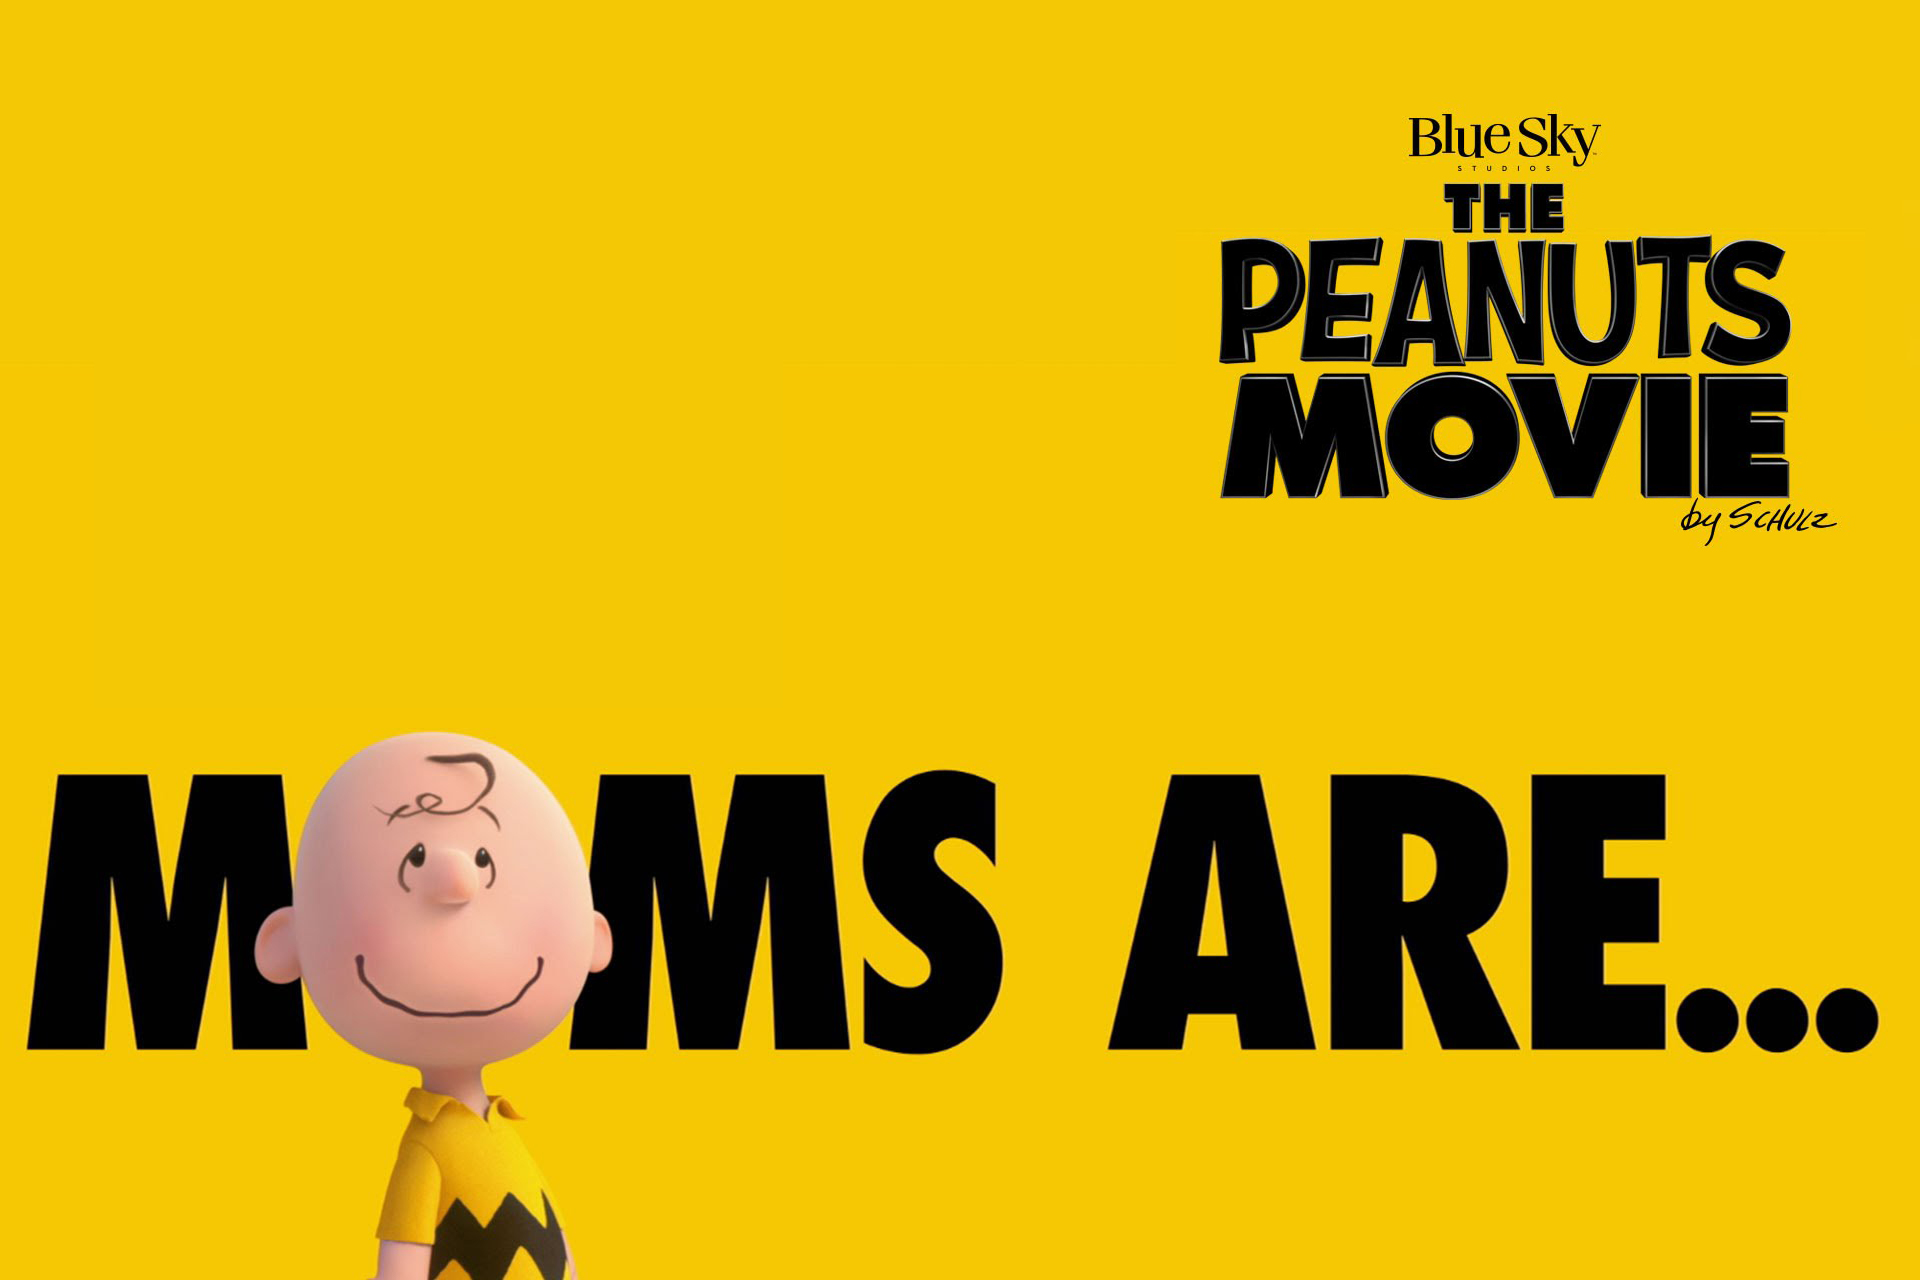 The peanuts movie 2015 hd wallpapers volganga the peanuts movie desktop hd wallpapers voltagebd Image collections